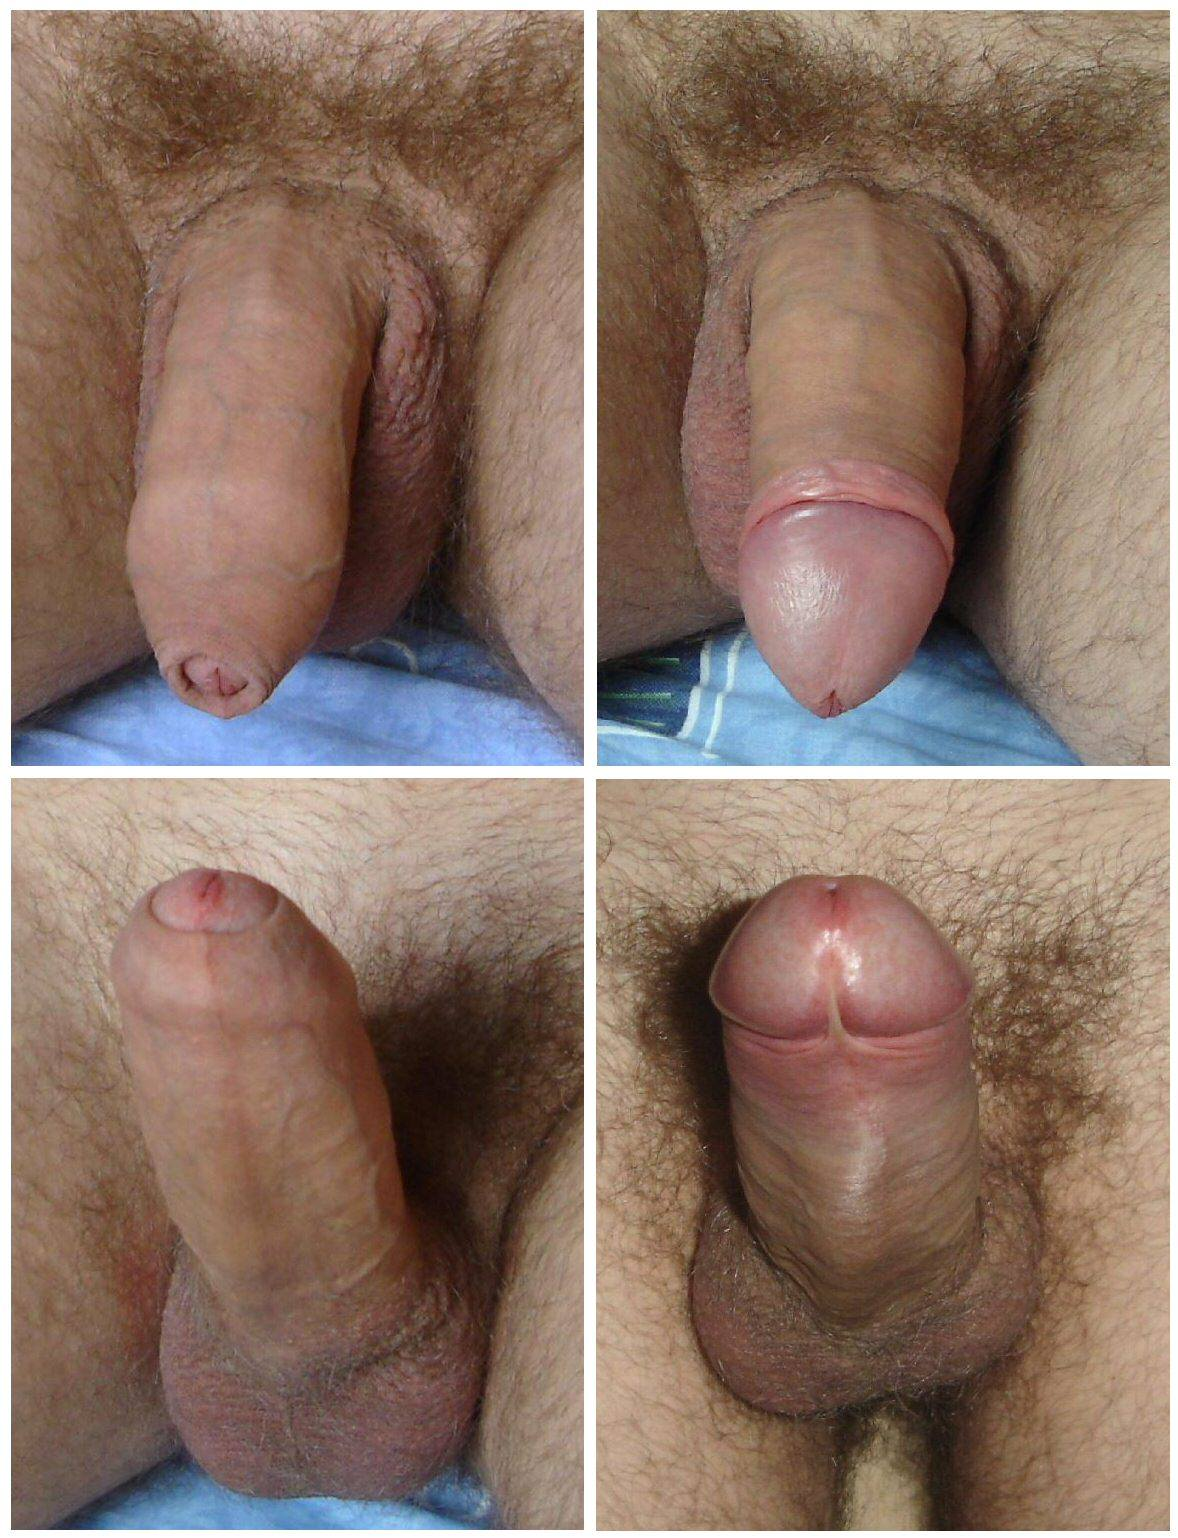 Appearance - Intact Vs Circumcised-4779